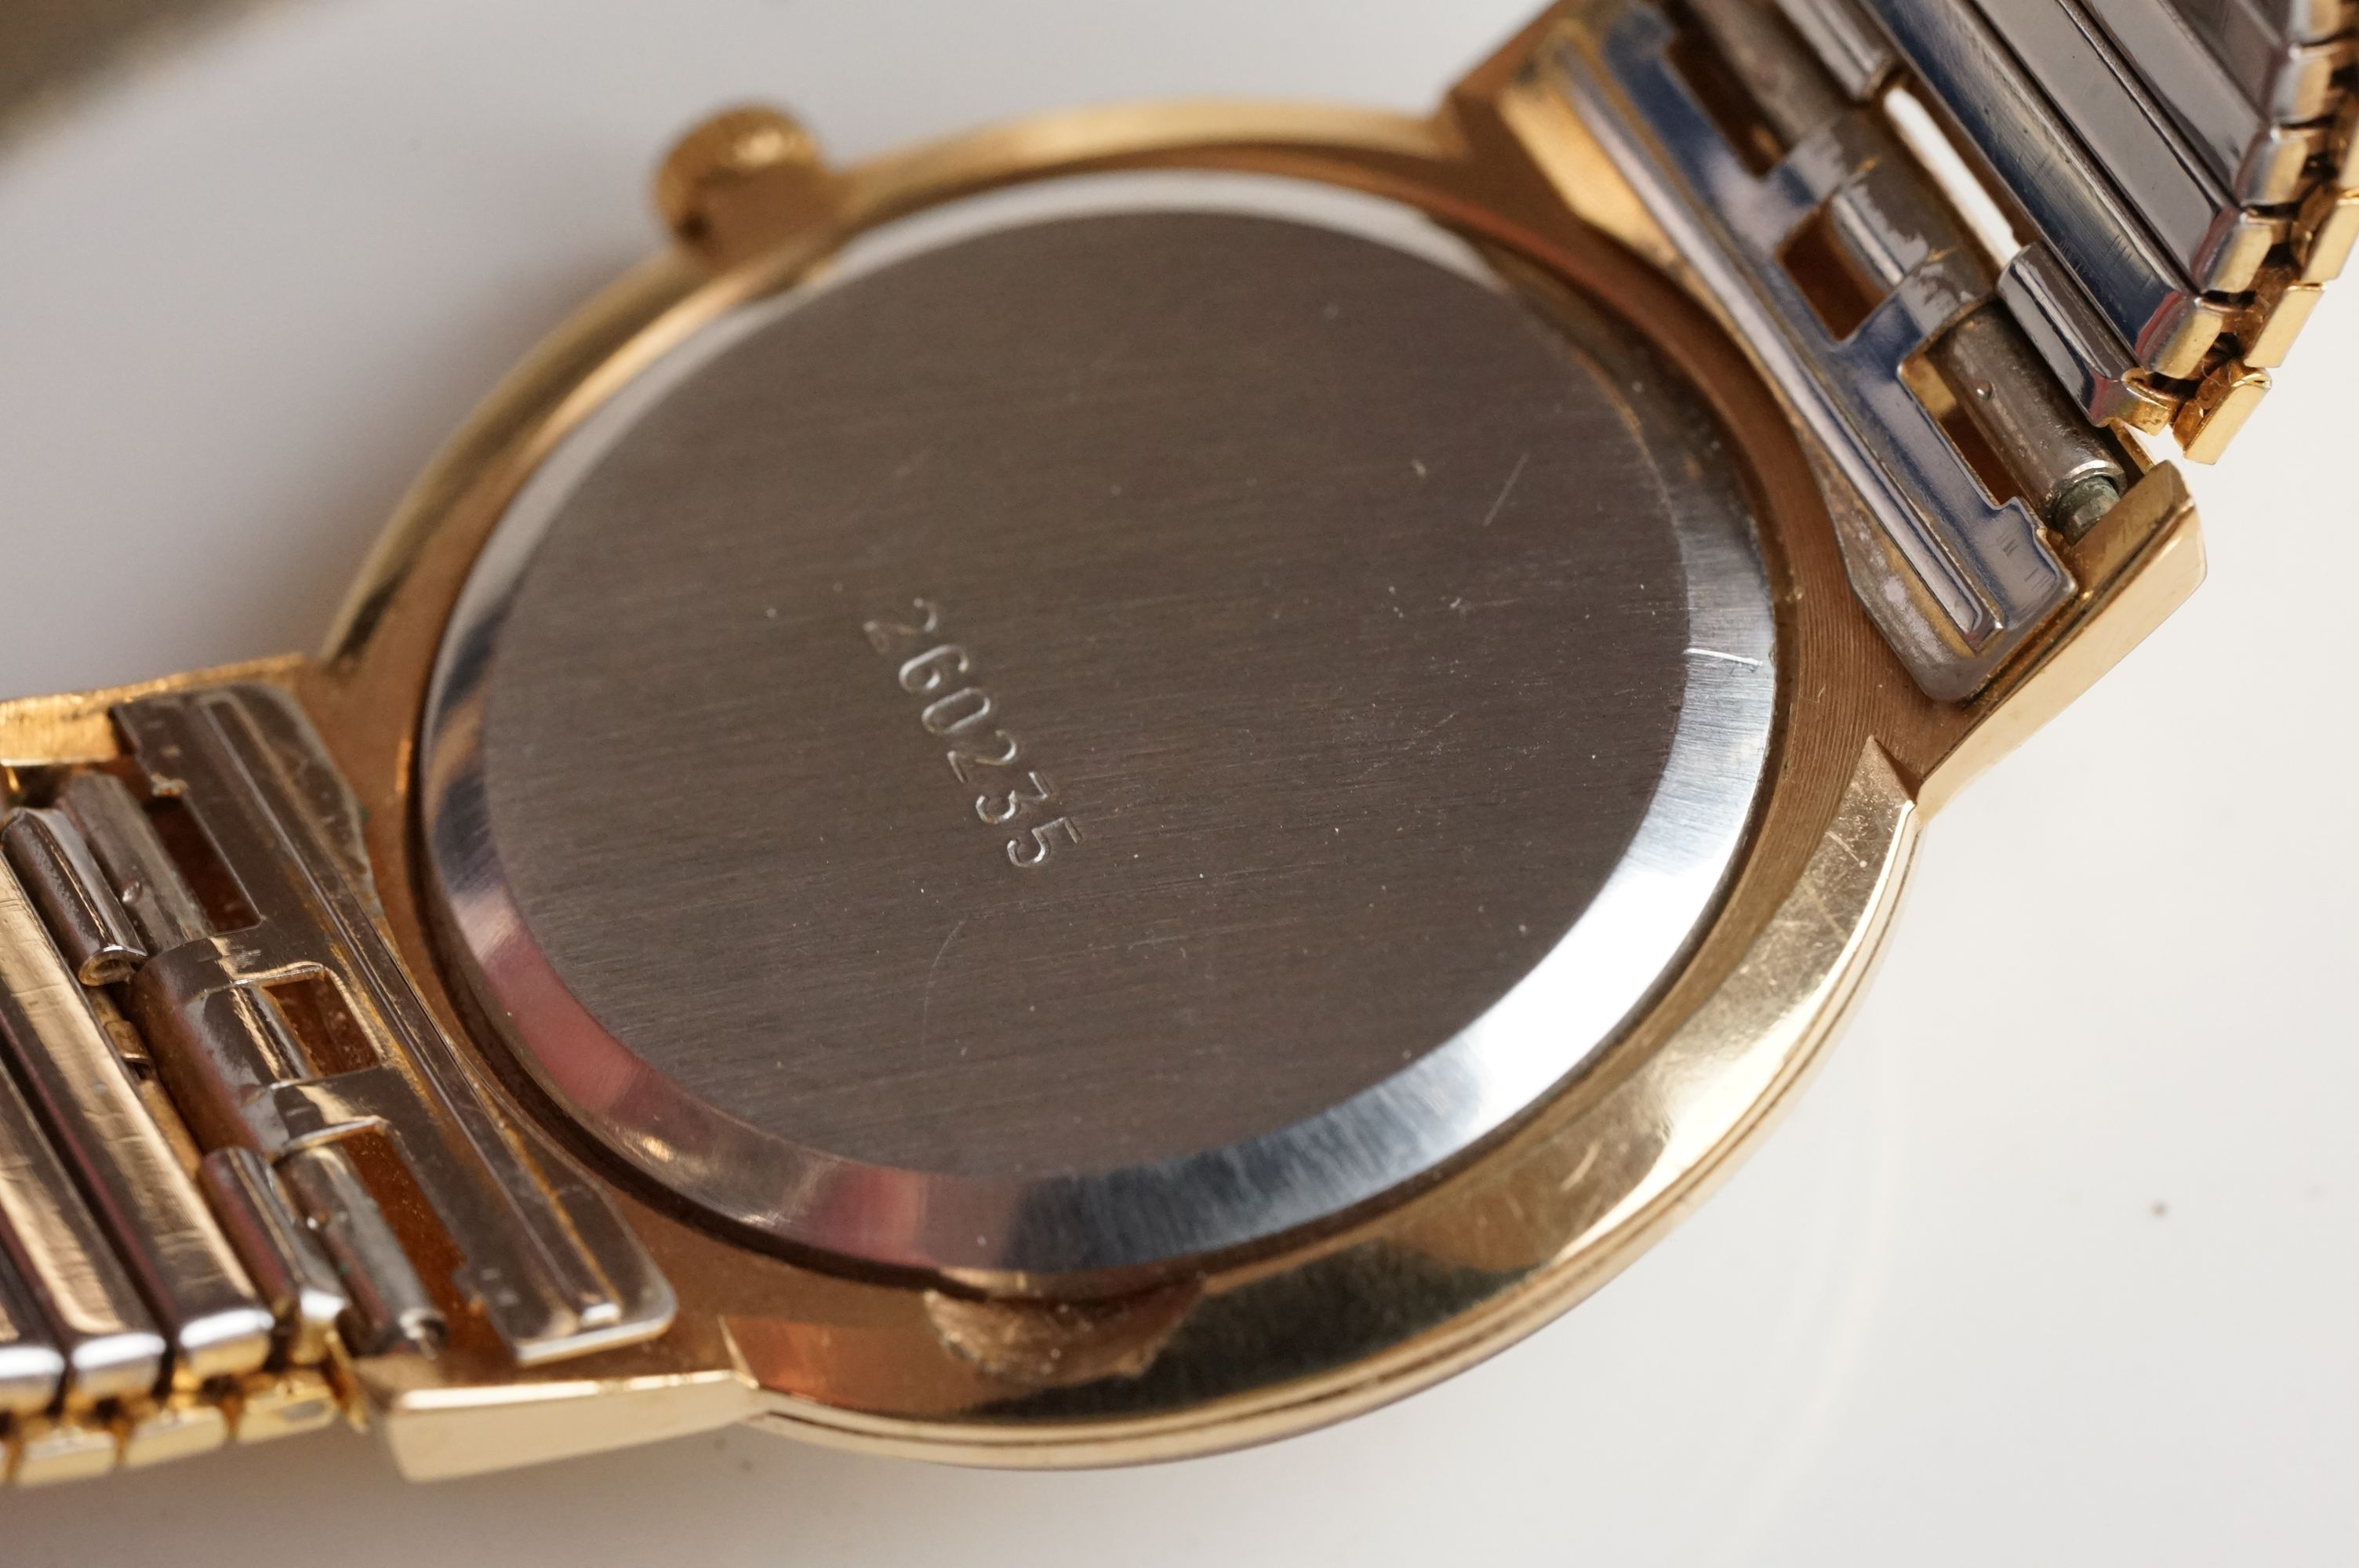 A boxed Seiko SQ gents day / date quartz wristwatch together with another Seiko and a Sekonda. - Image 8 of 8